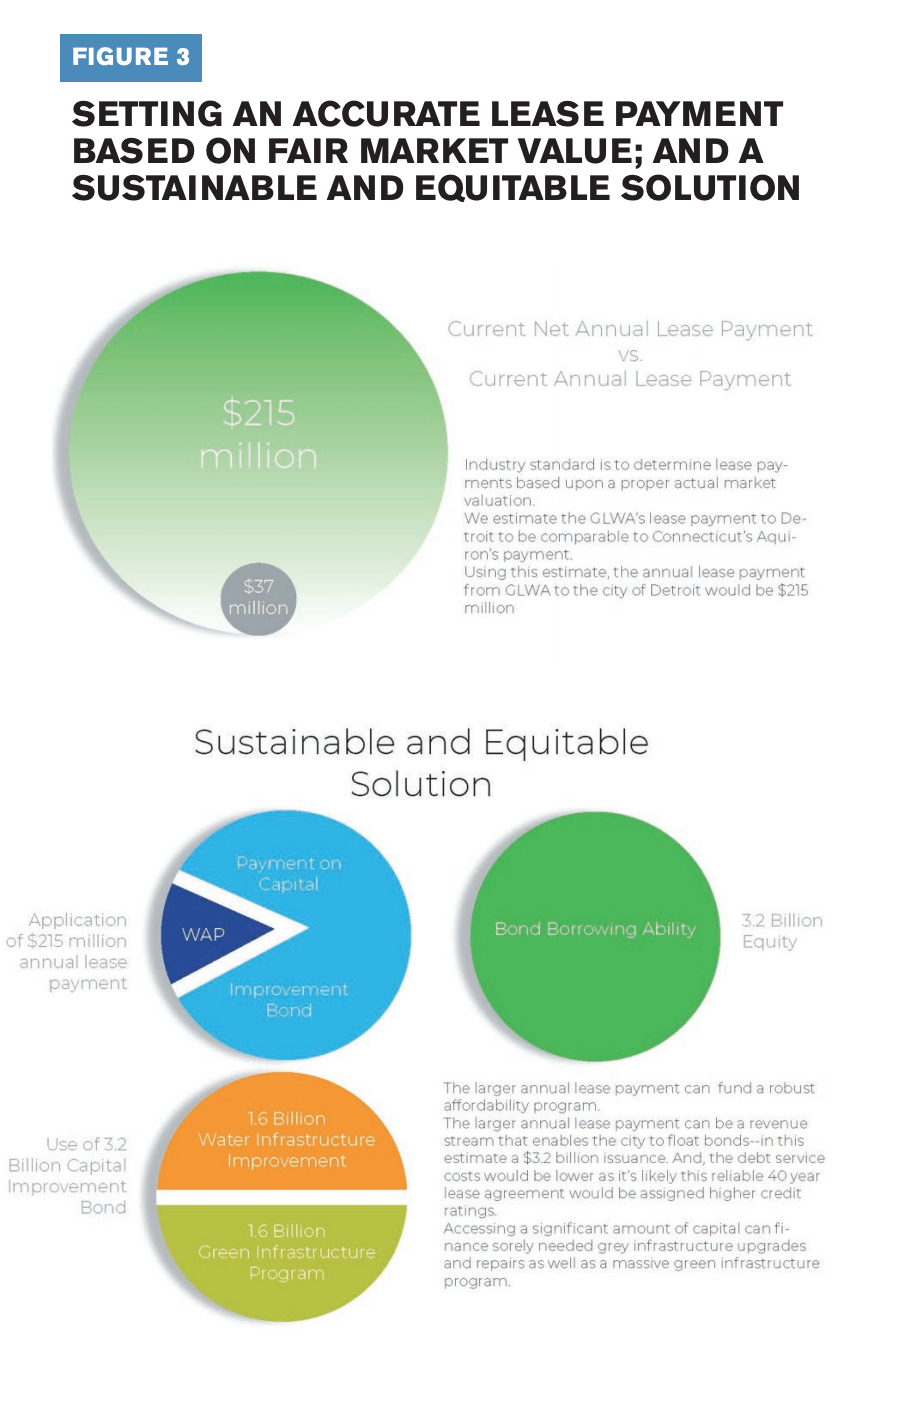 This infographic shows the current net annual lease payment vs. the current annual lease payment as well as a sustainable and equitable solution.